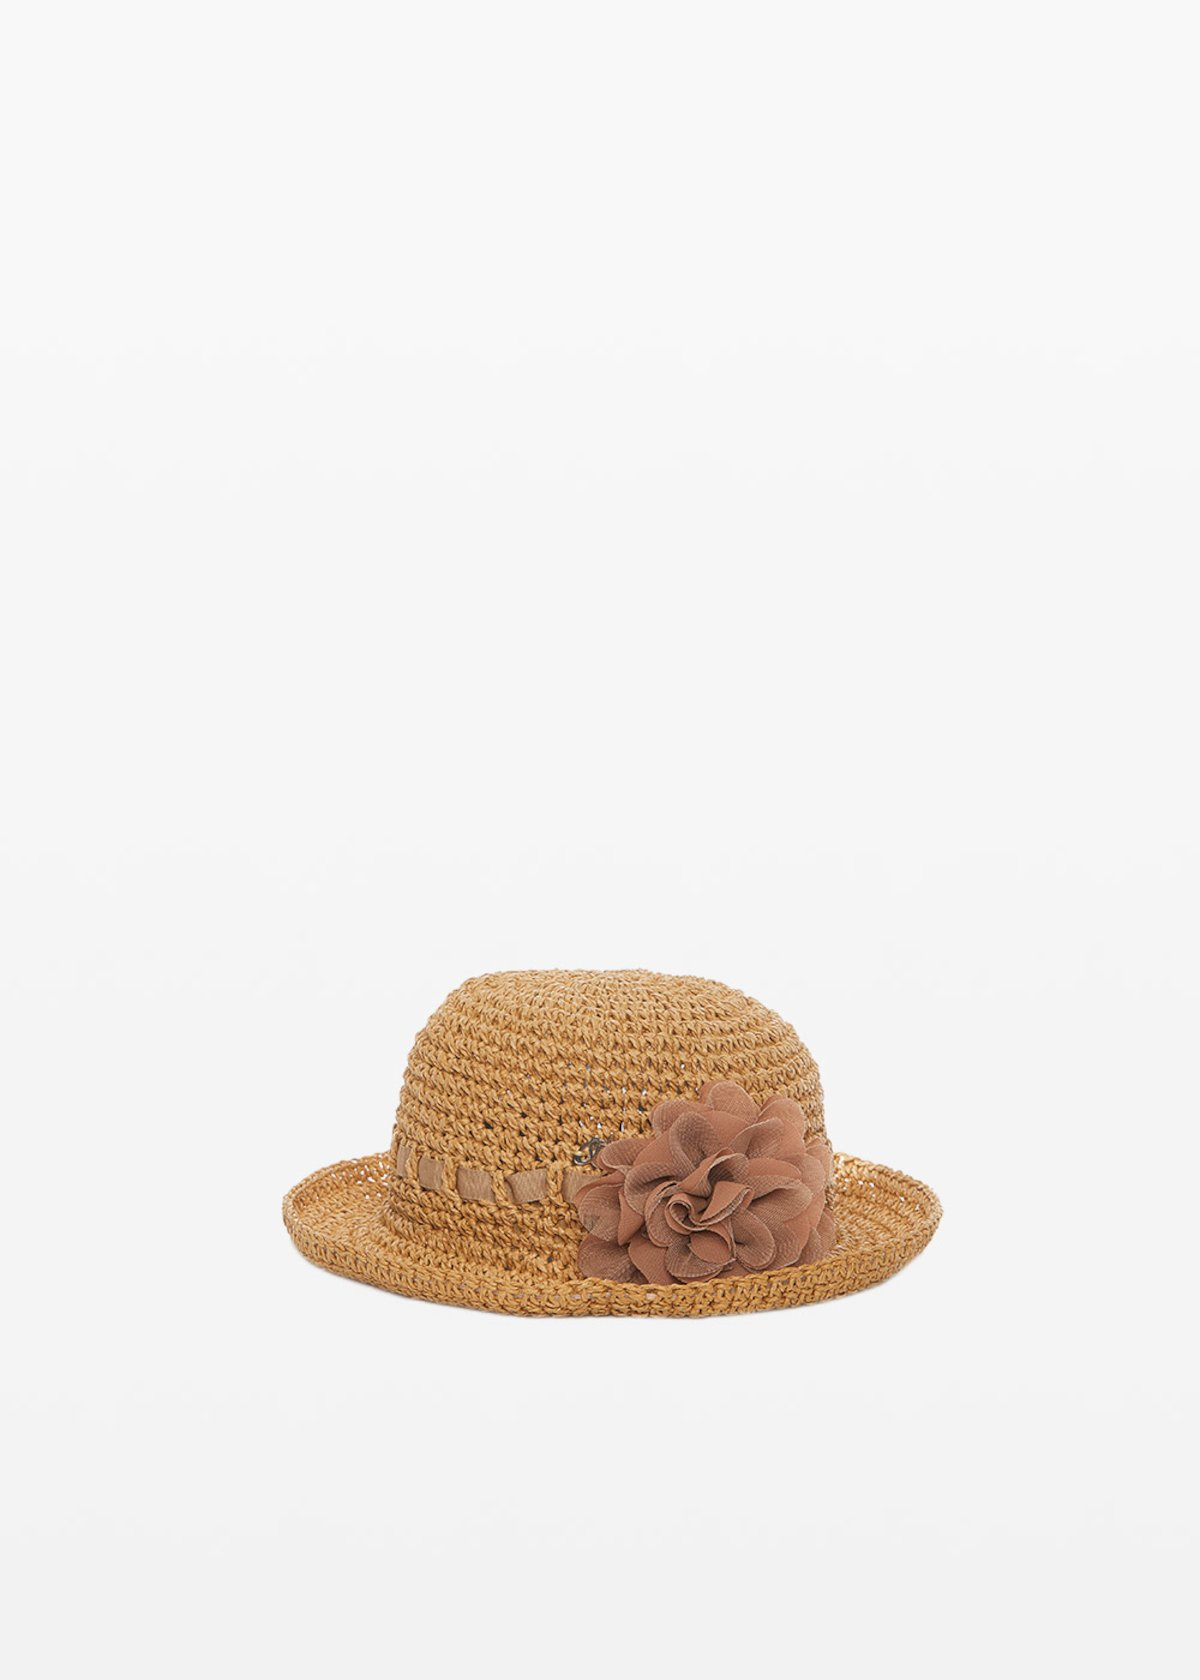 Claire straw hat with flower detail